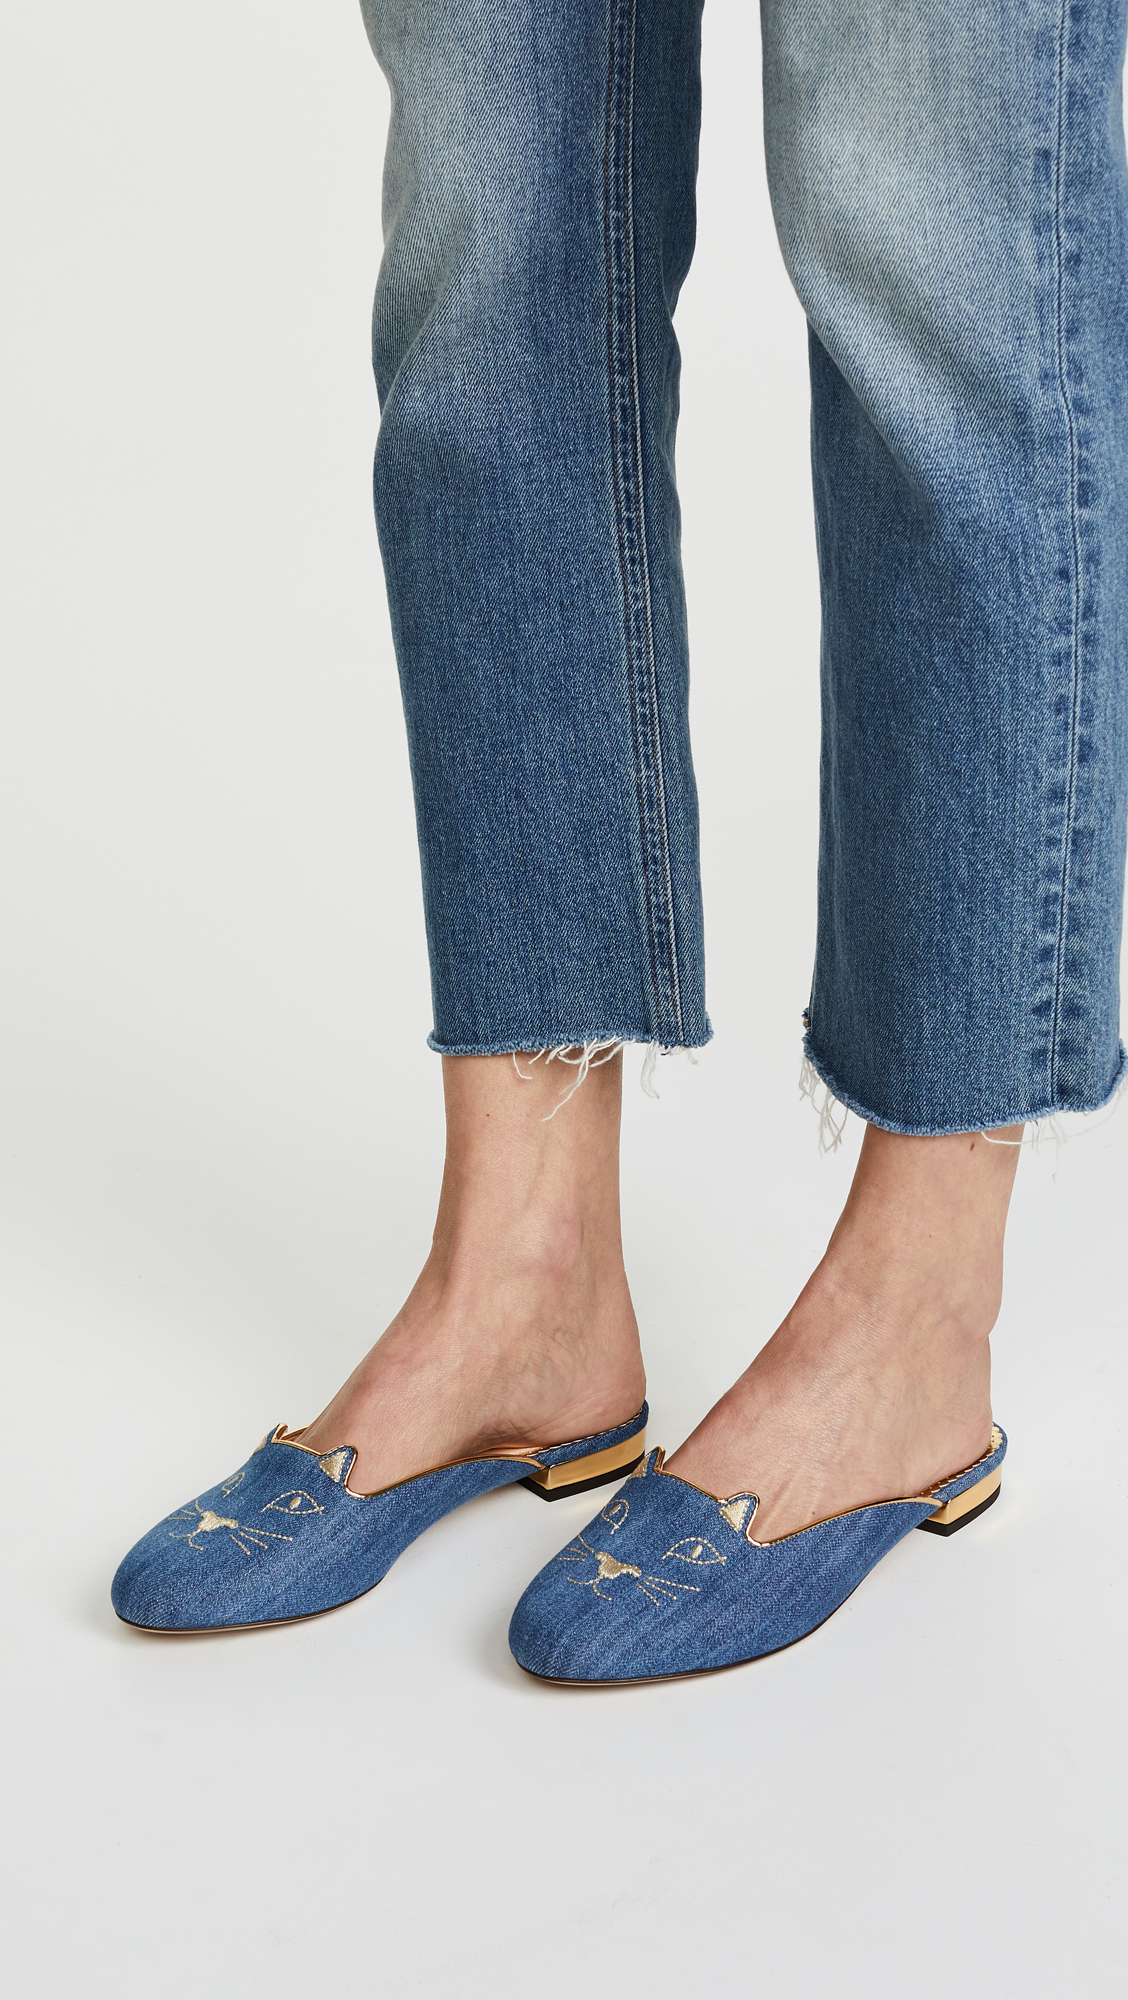 light denim Kitty slippers - Blue Charlotte Olympia o0s35q1gsN